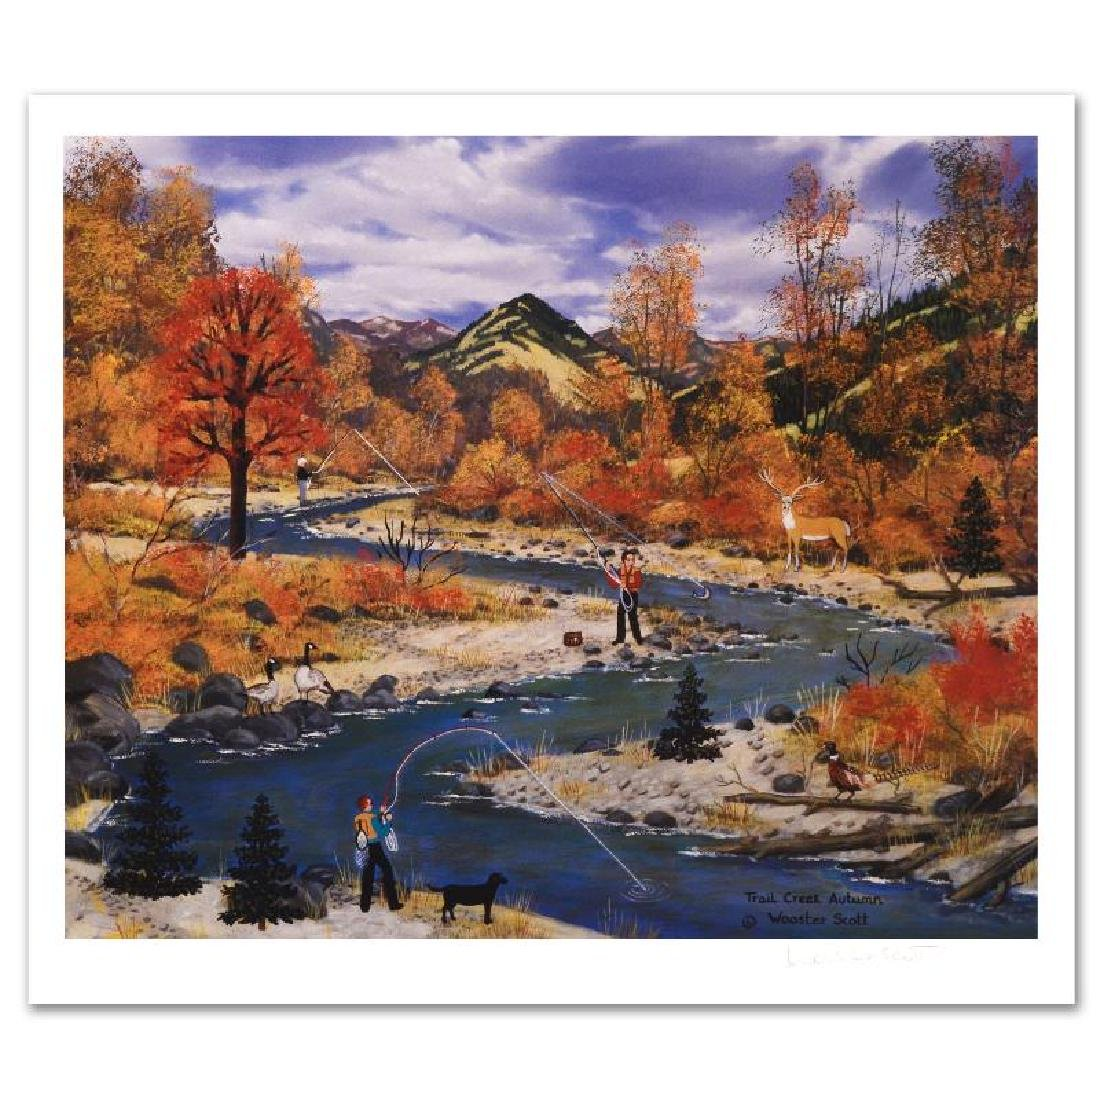 """Trail Creek Autumn"" Limited Edition Lithograph by Jane"